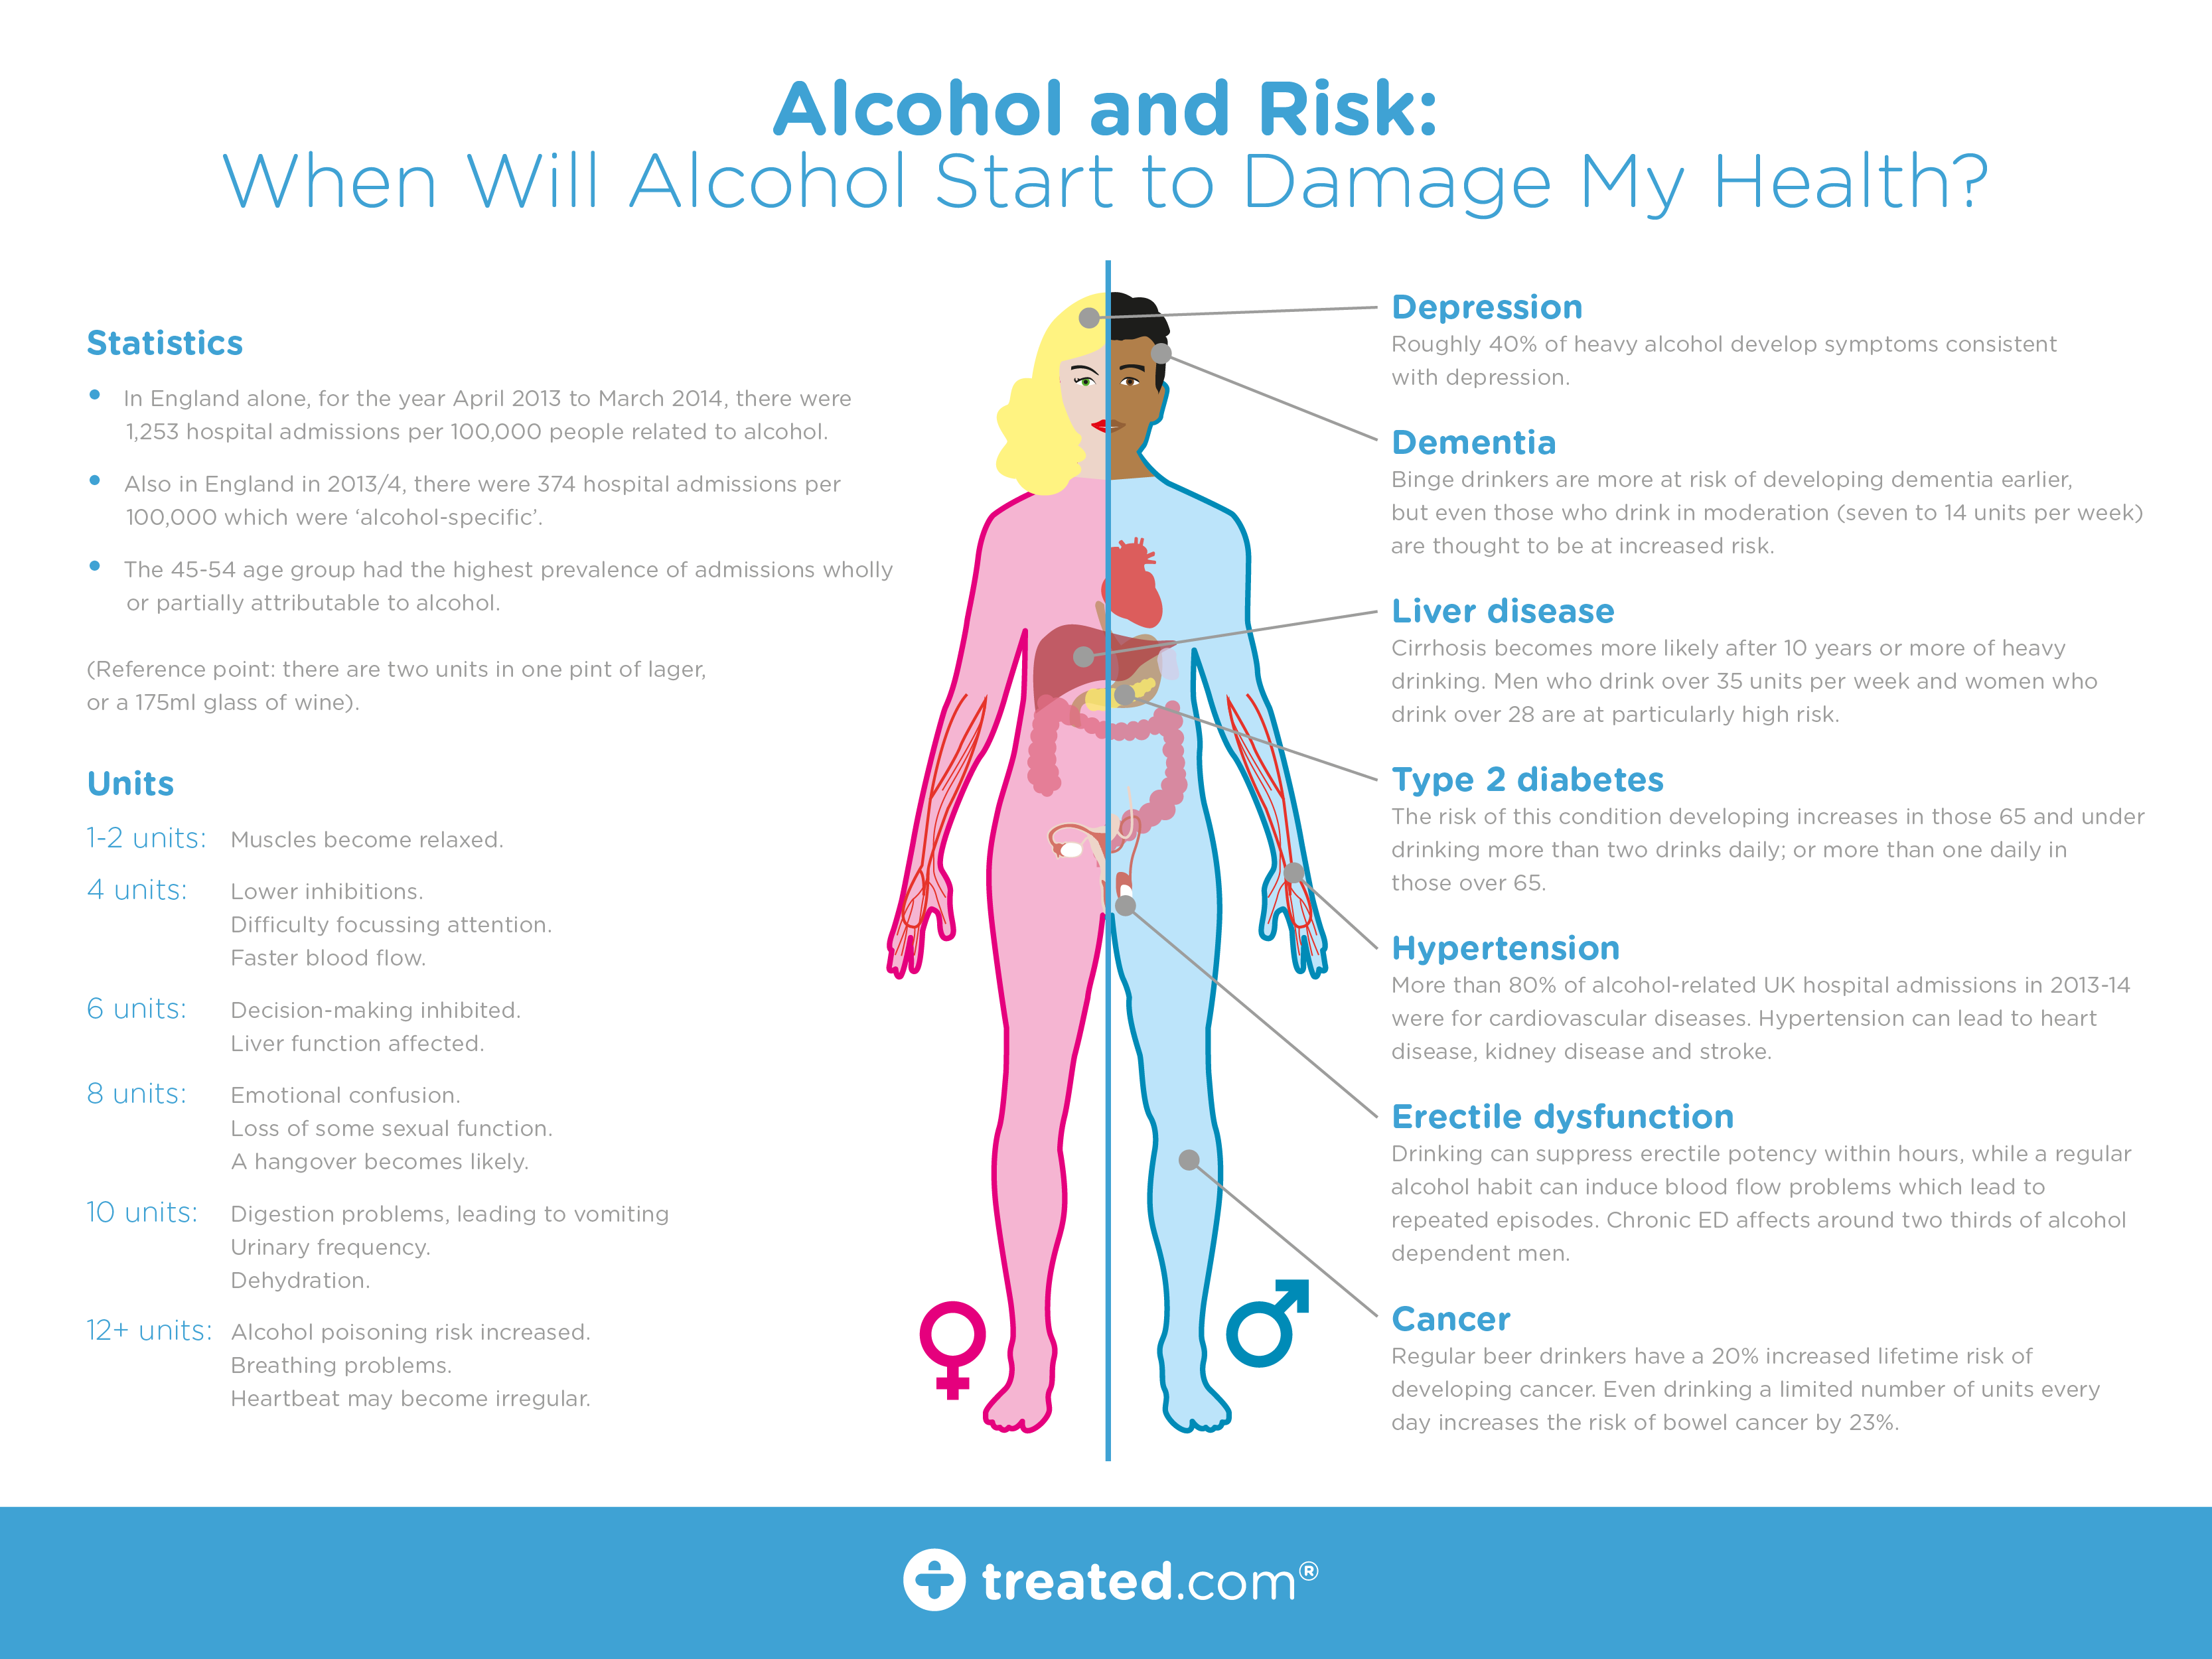 Should I Start Drinking Alcohol For Health